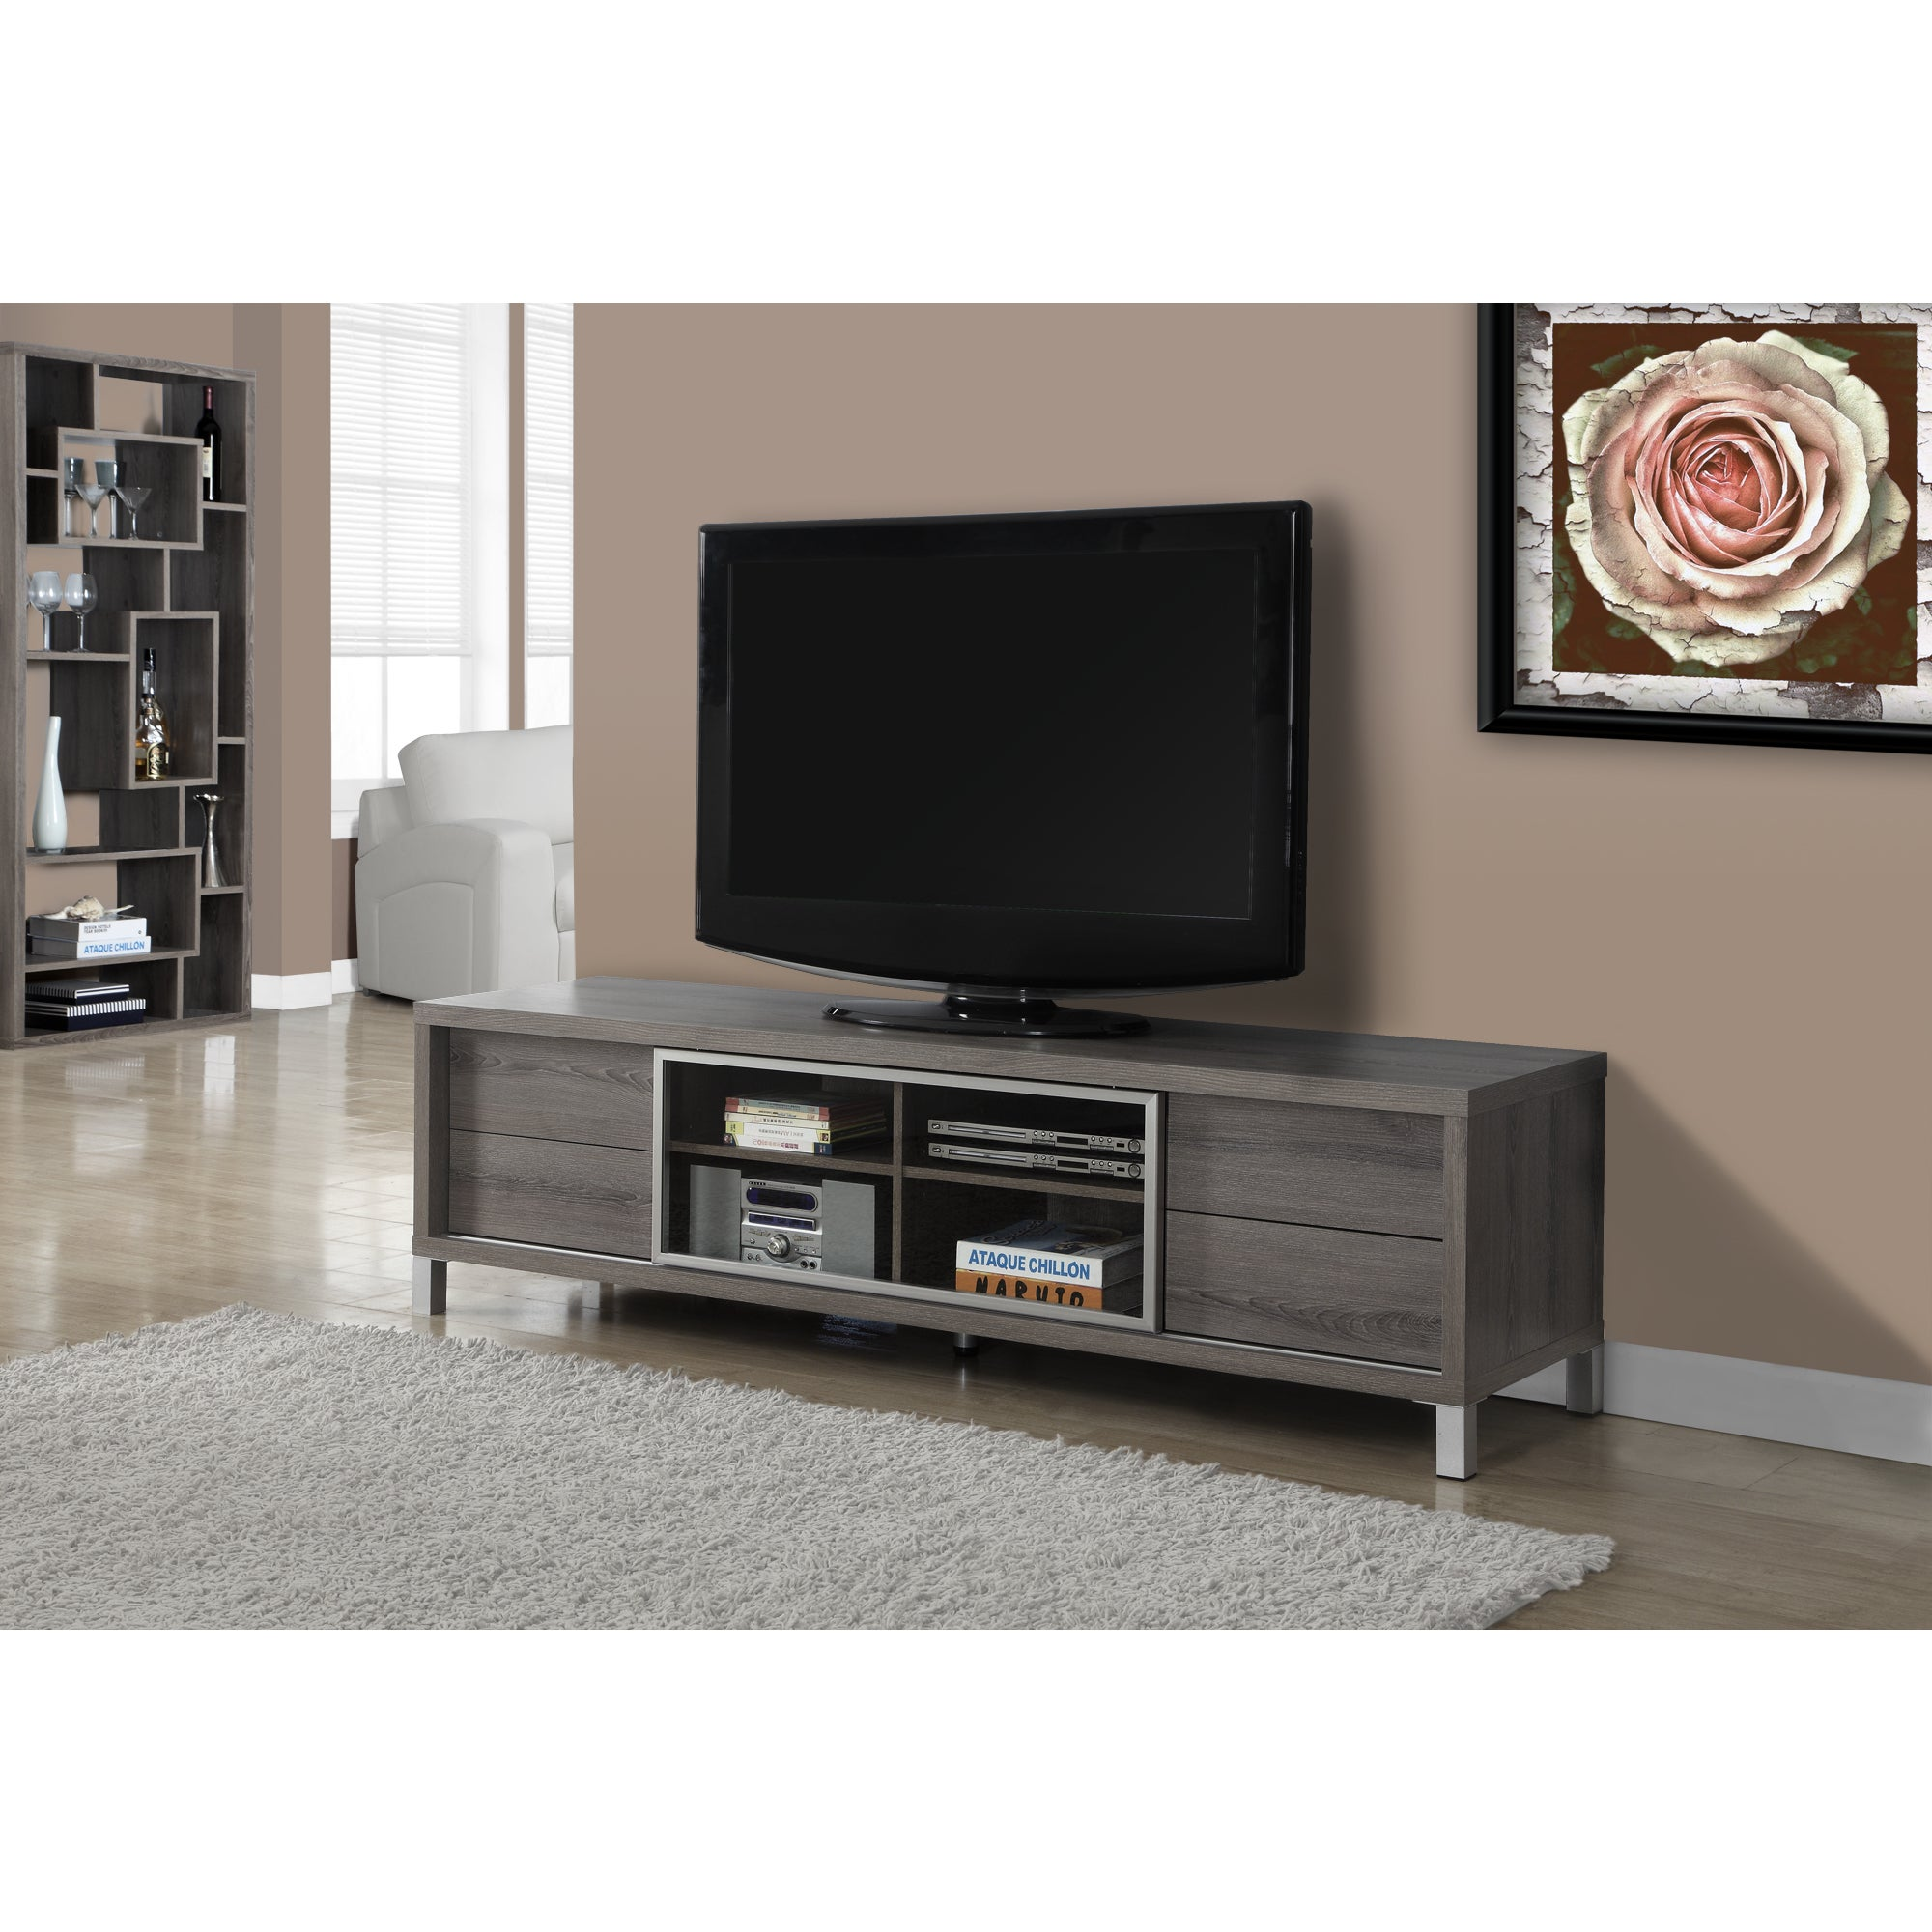 Shop Dark Taupe Reclaimed look 70 inch Euro TV